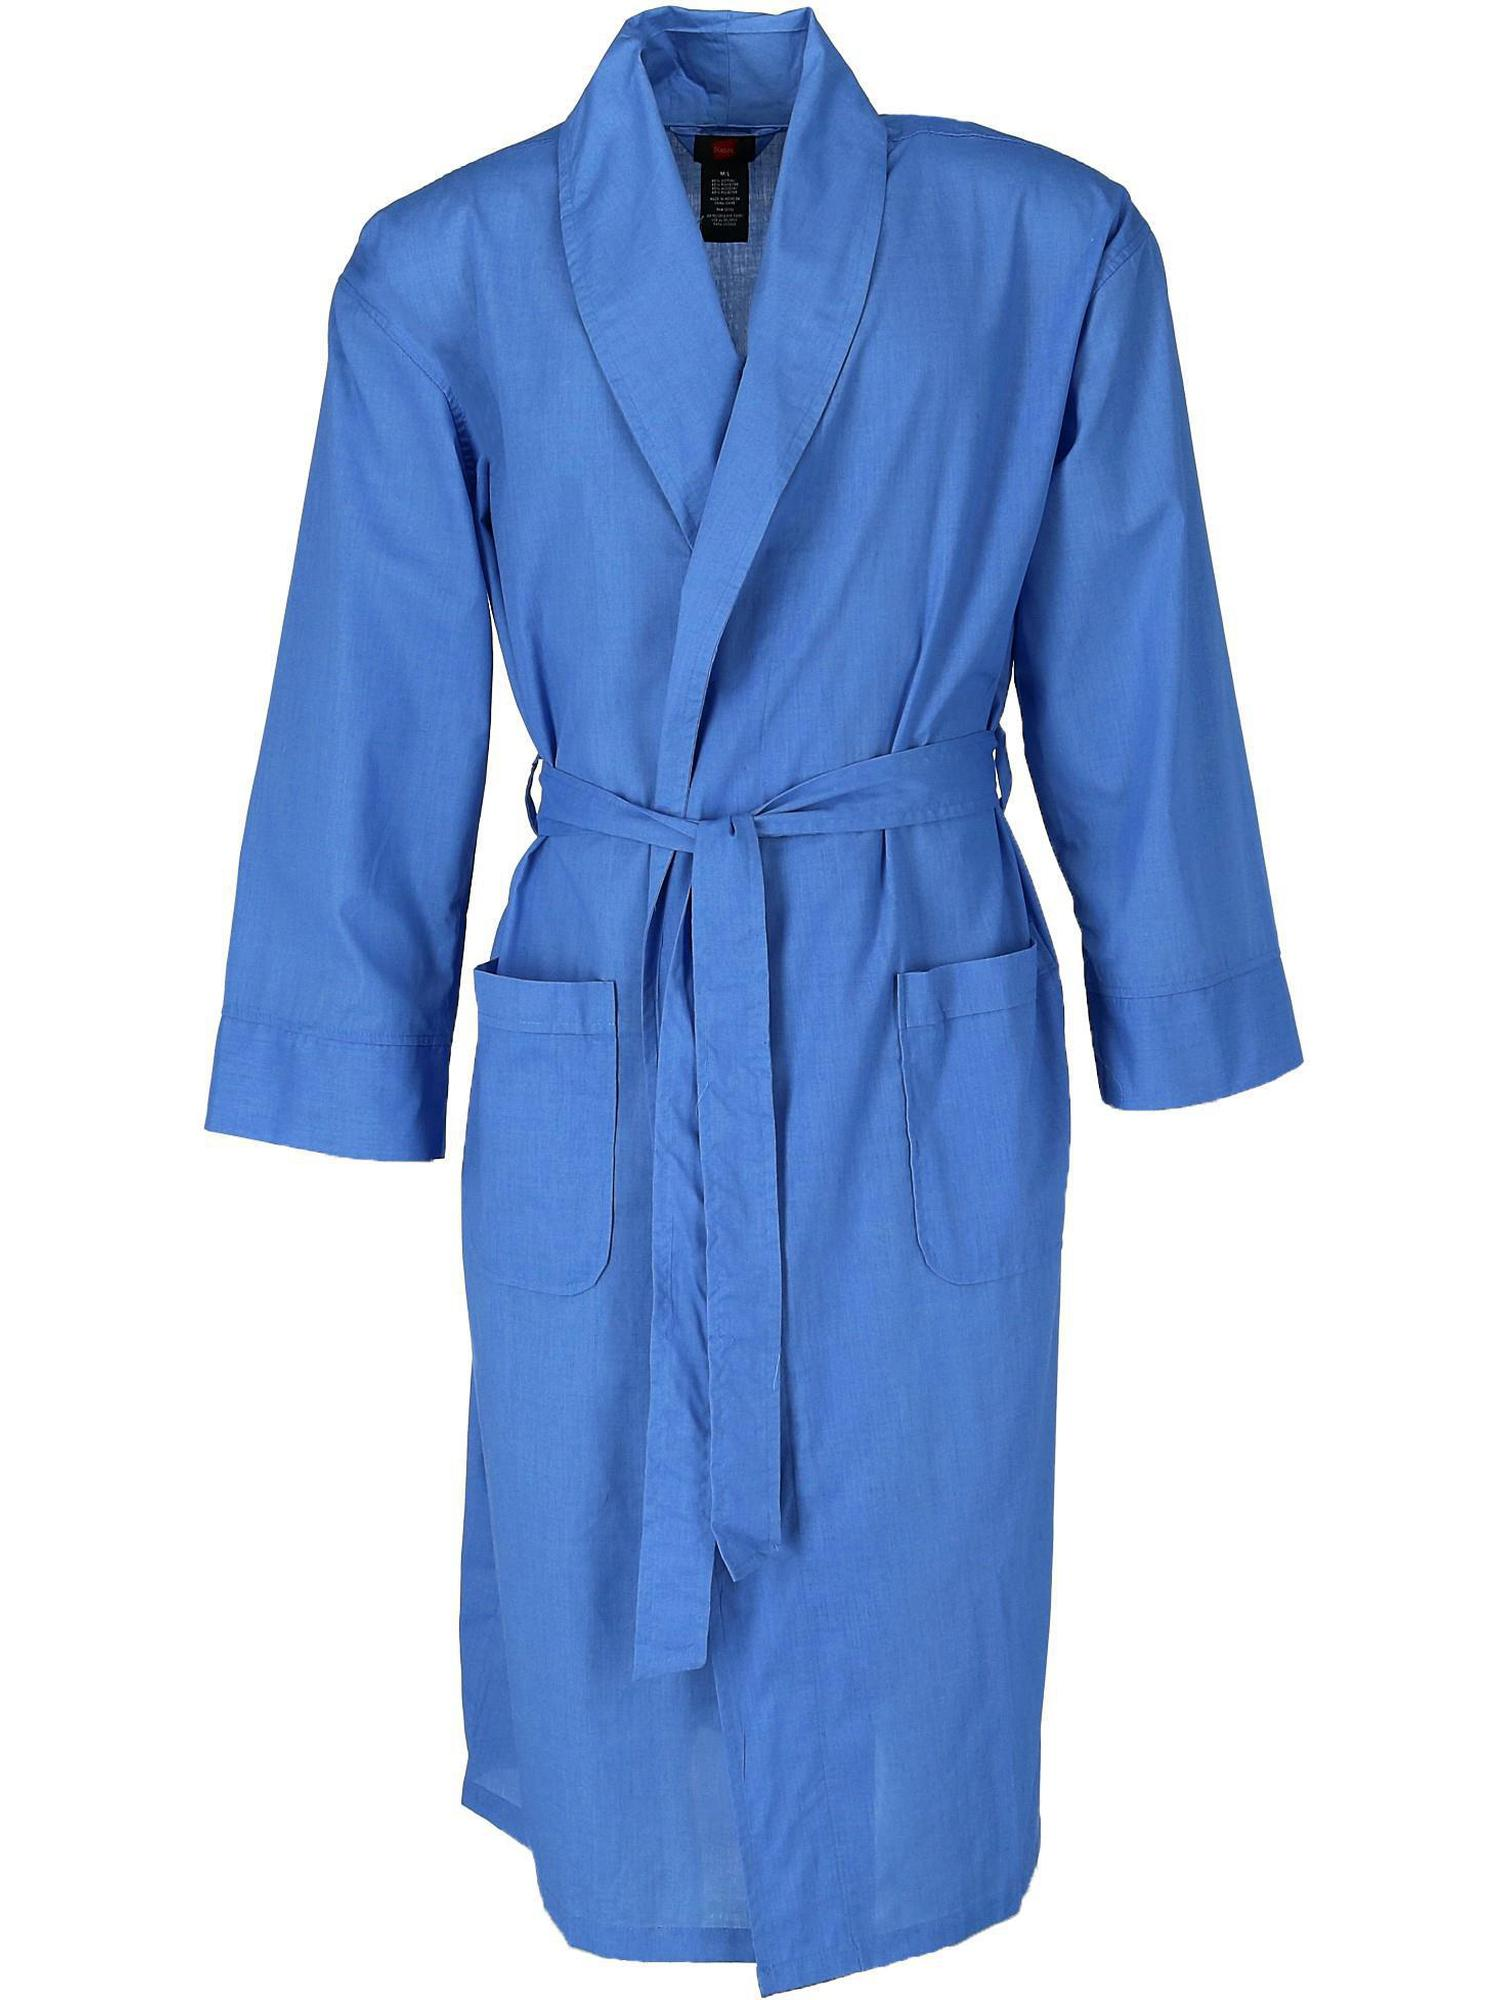 Size  3X/4X Men's Big and Tall Lightweight Woven Robe